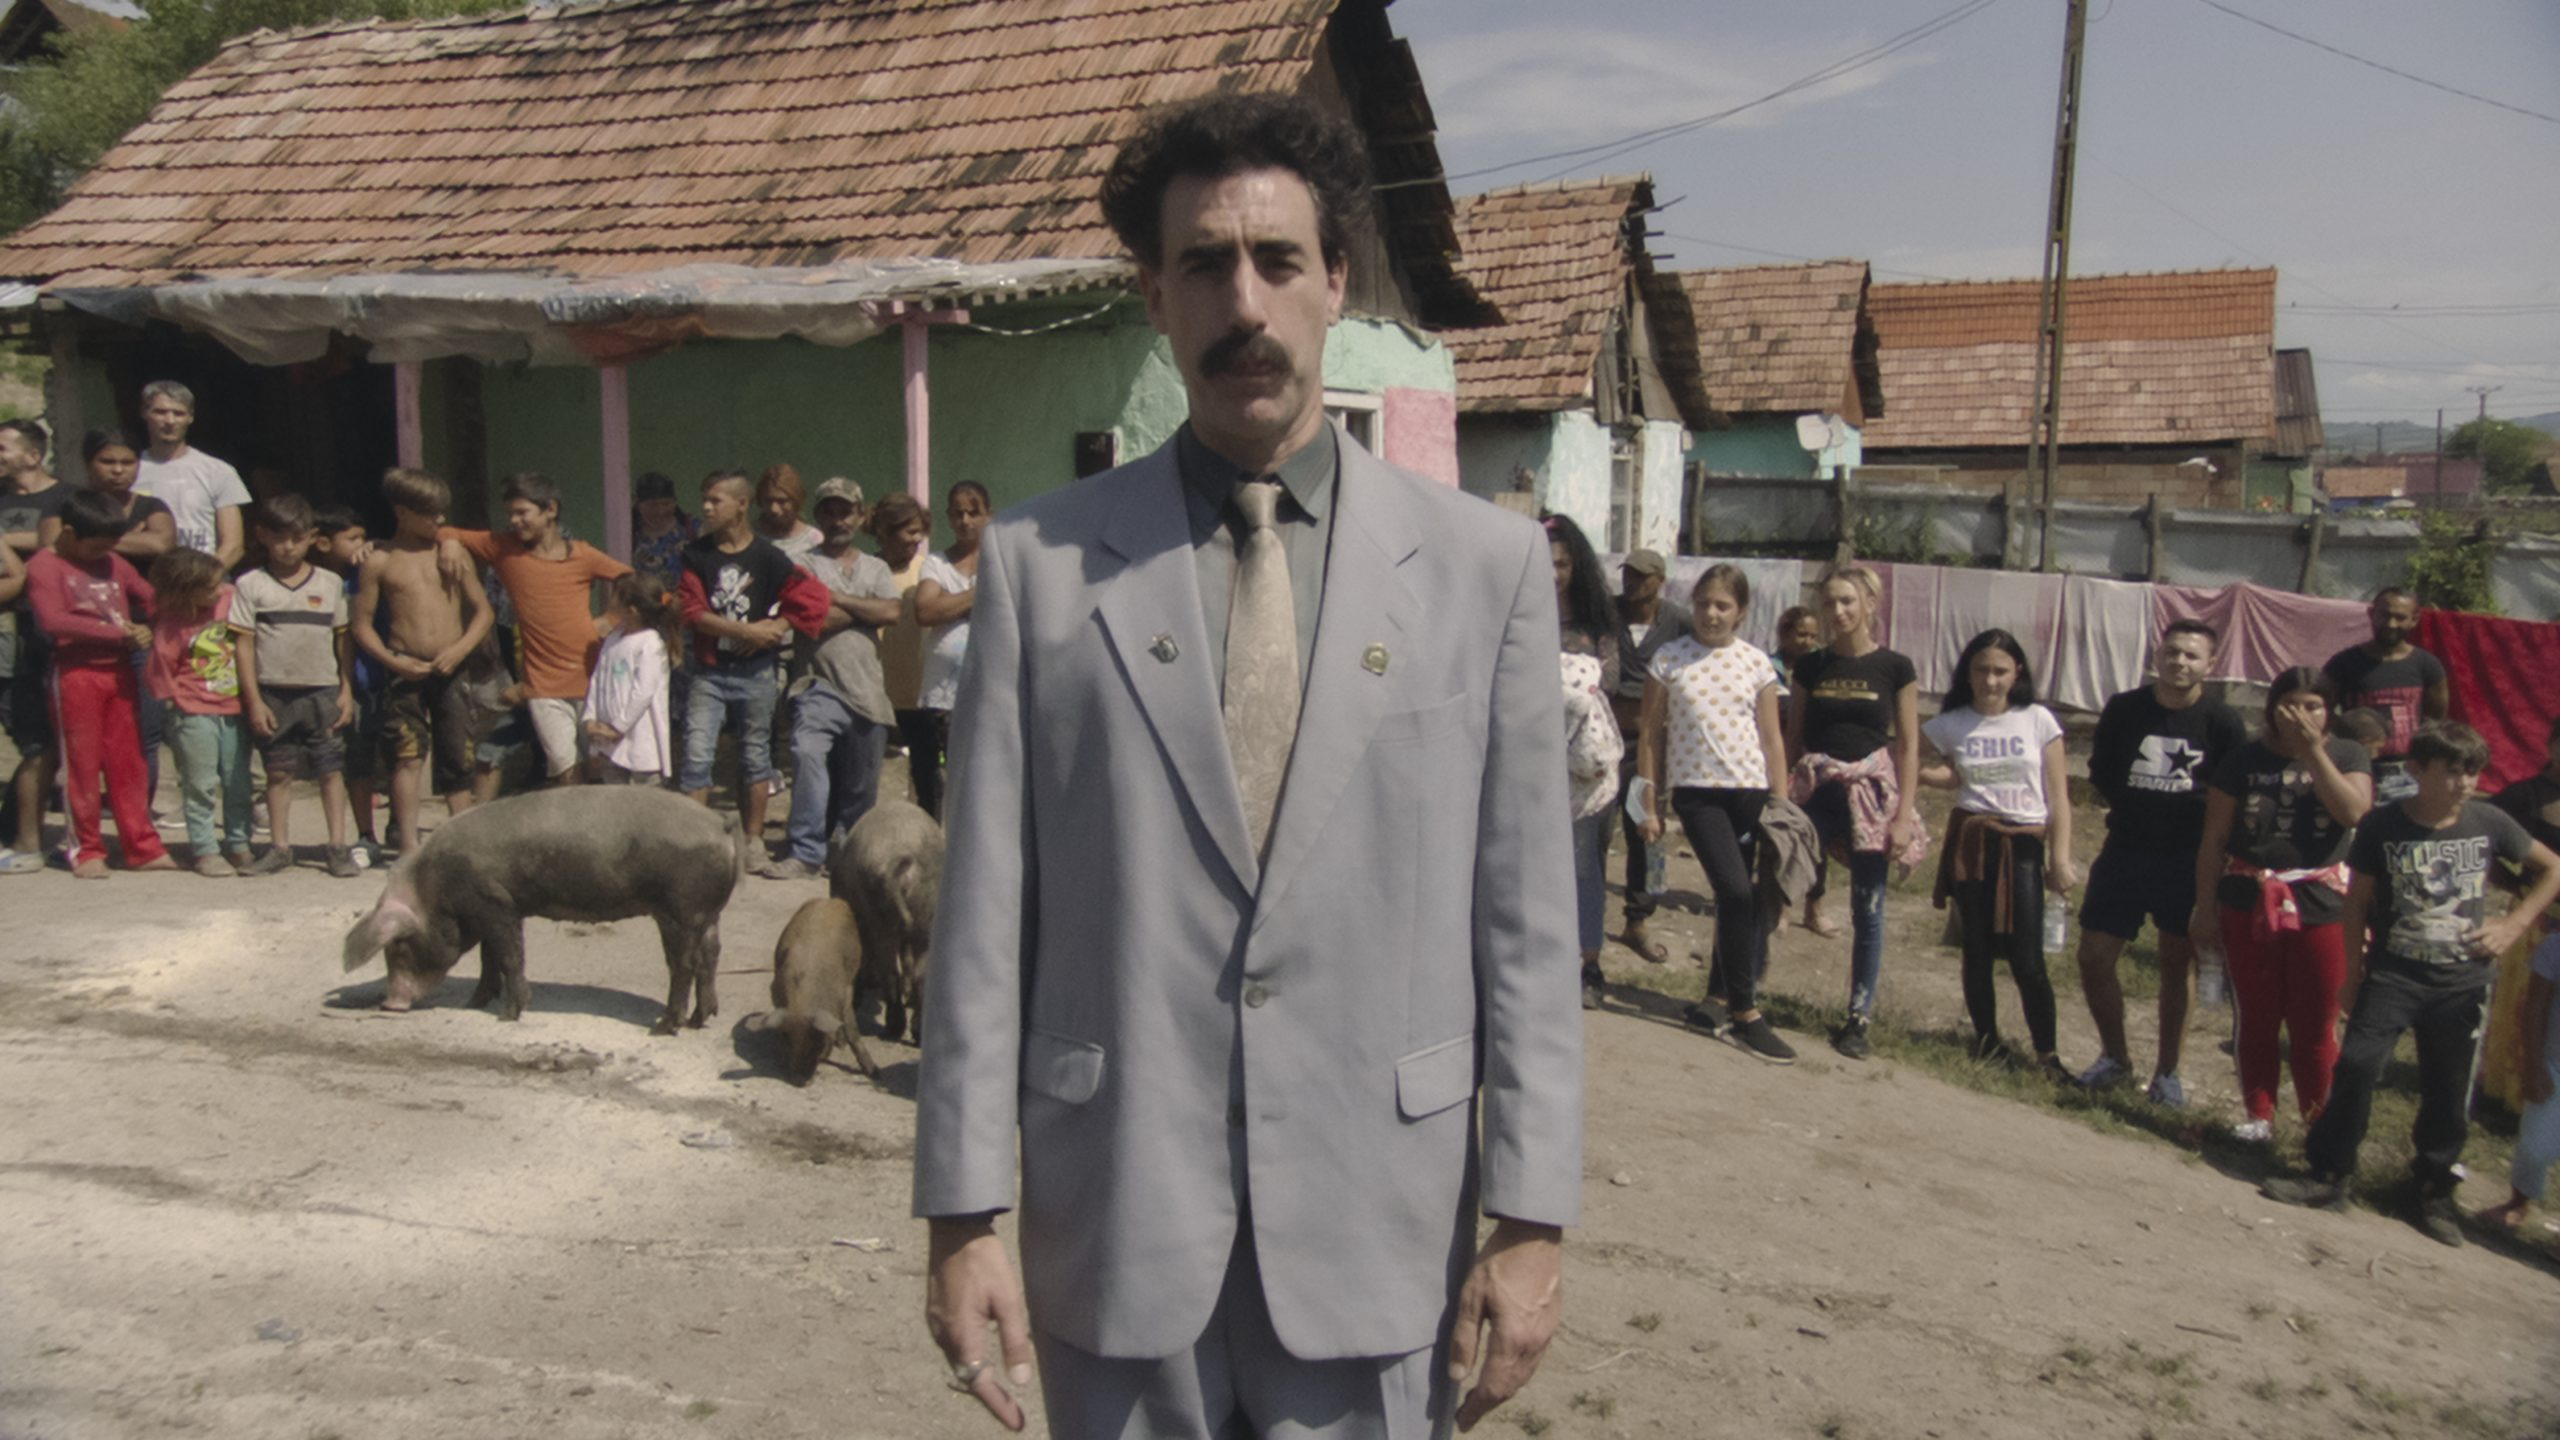 Borat Subsequent Moviefilm Is An October Surprise